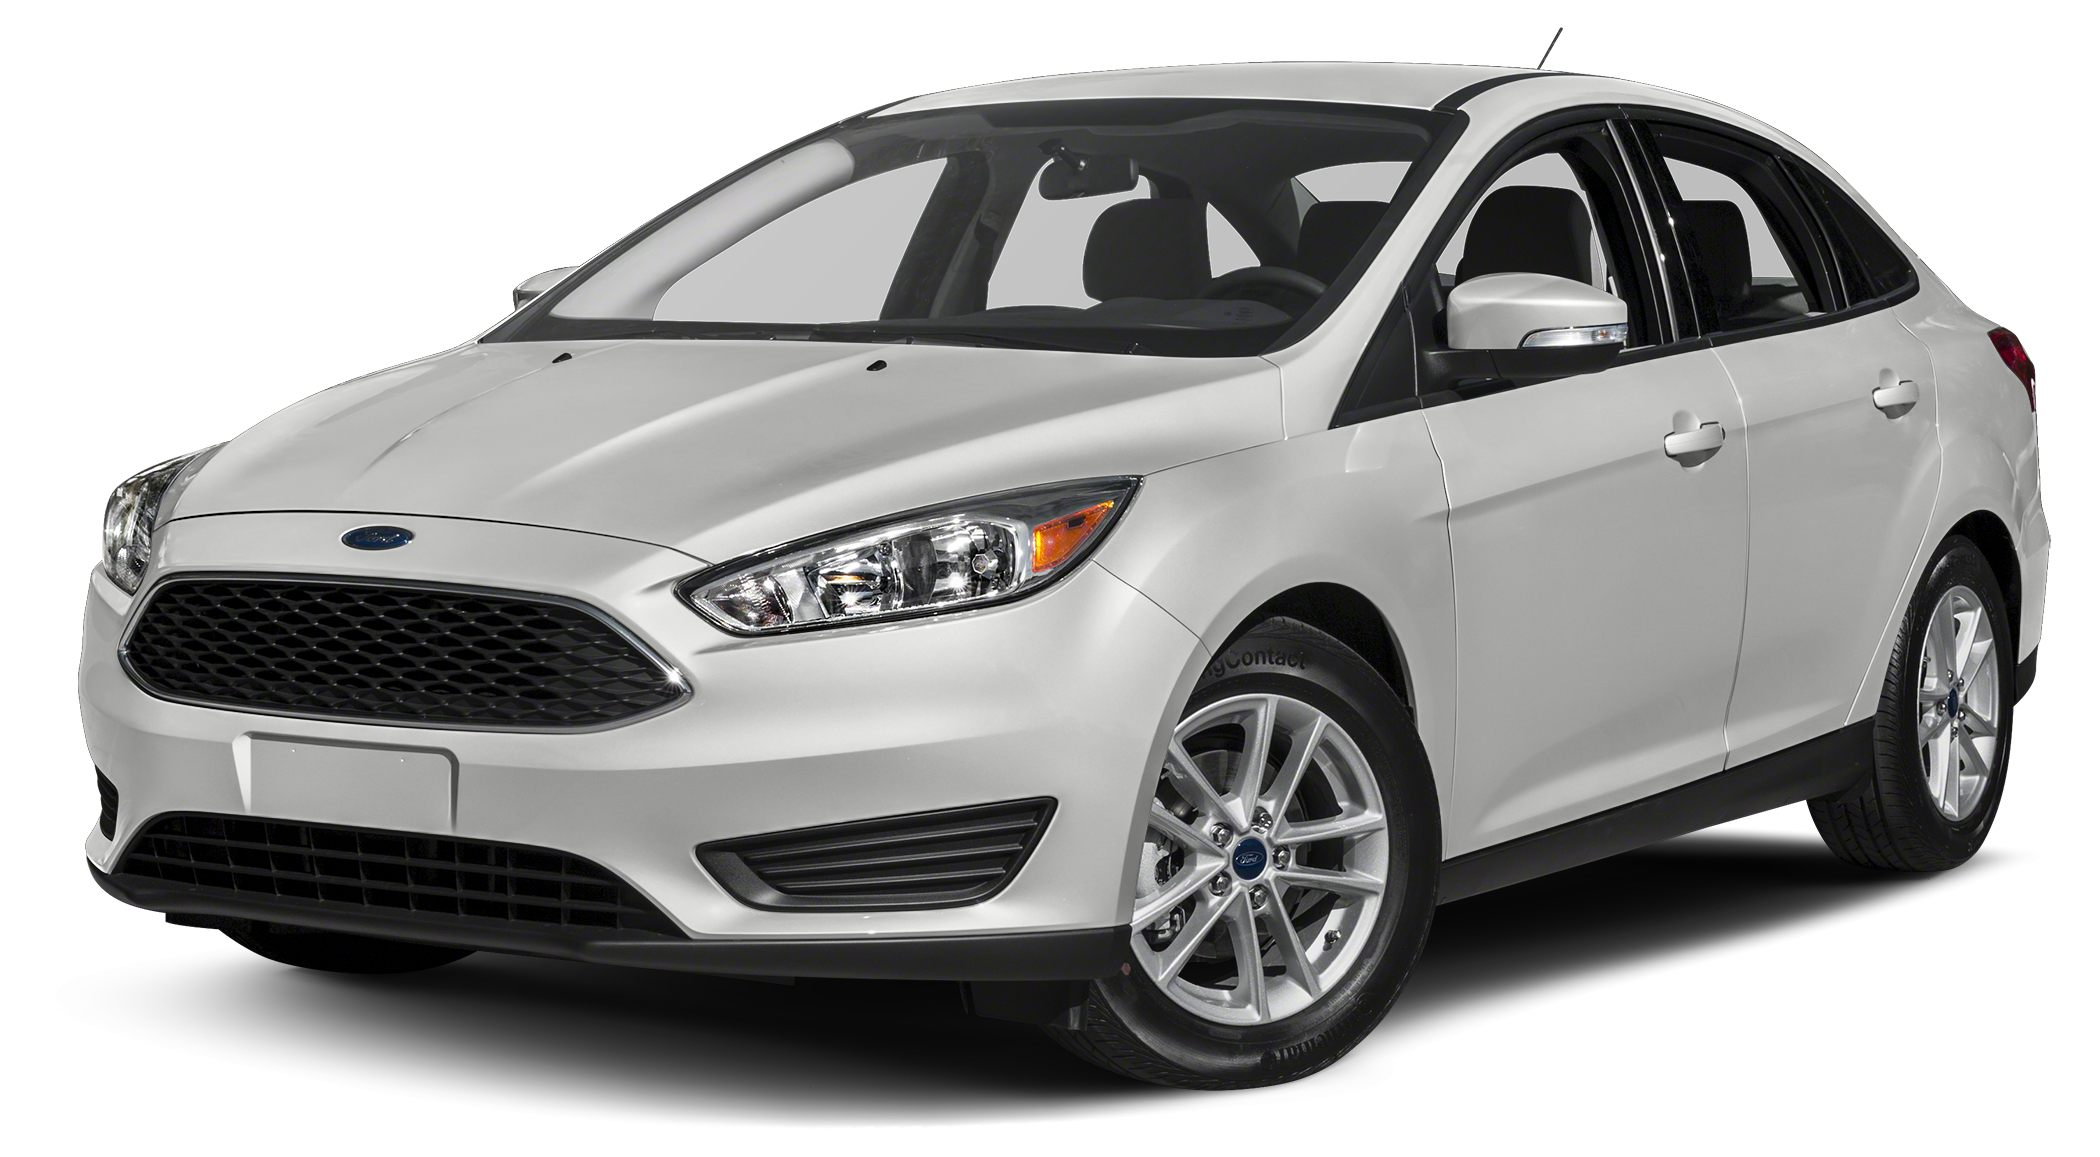 2015 Ford Focus S It only takes a glance to see the all-new 2015 Ford Focus dynamic new look One